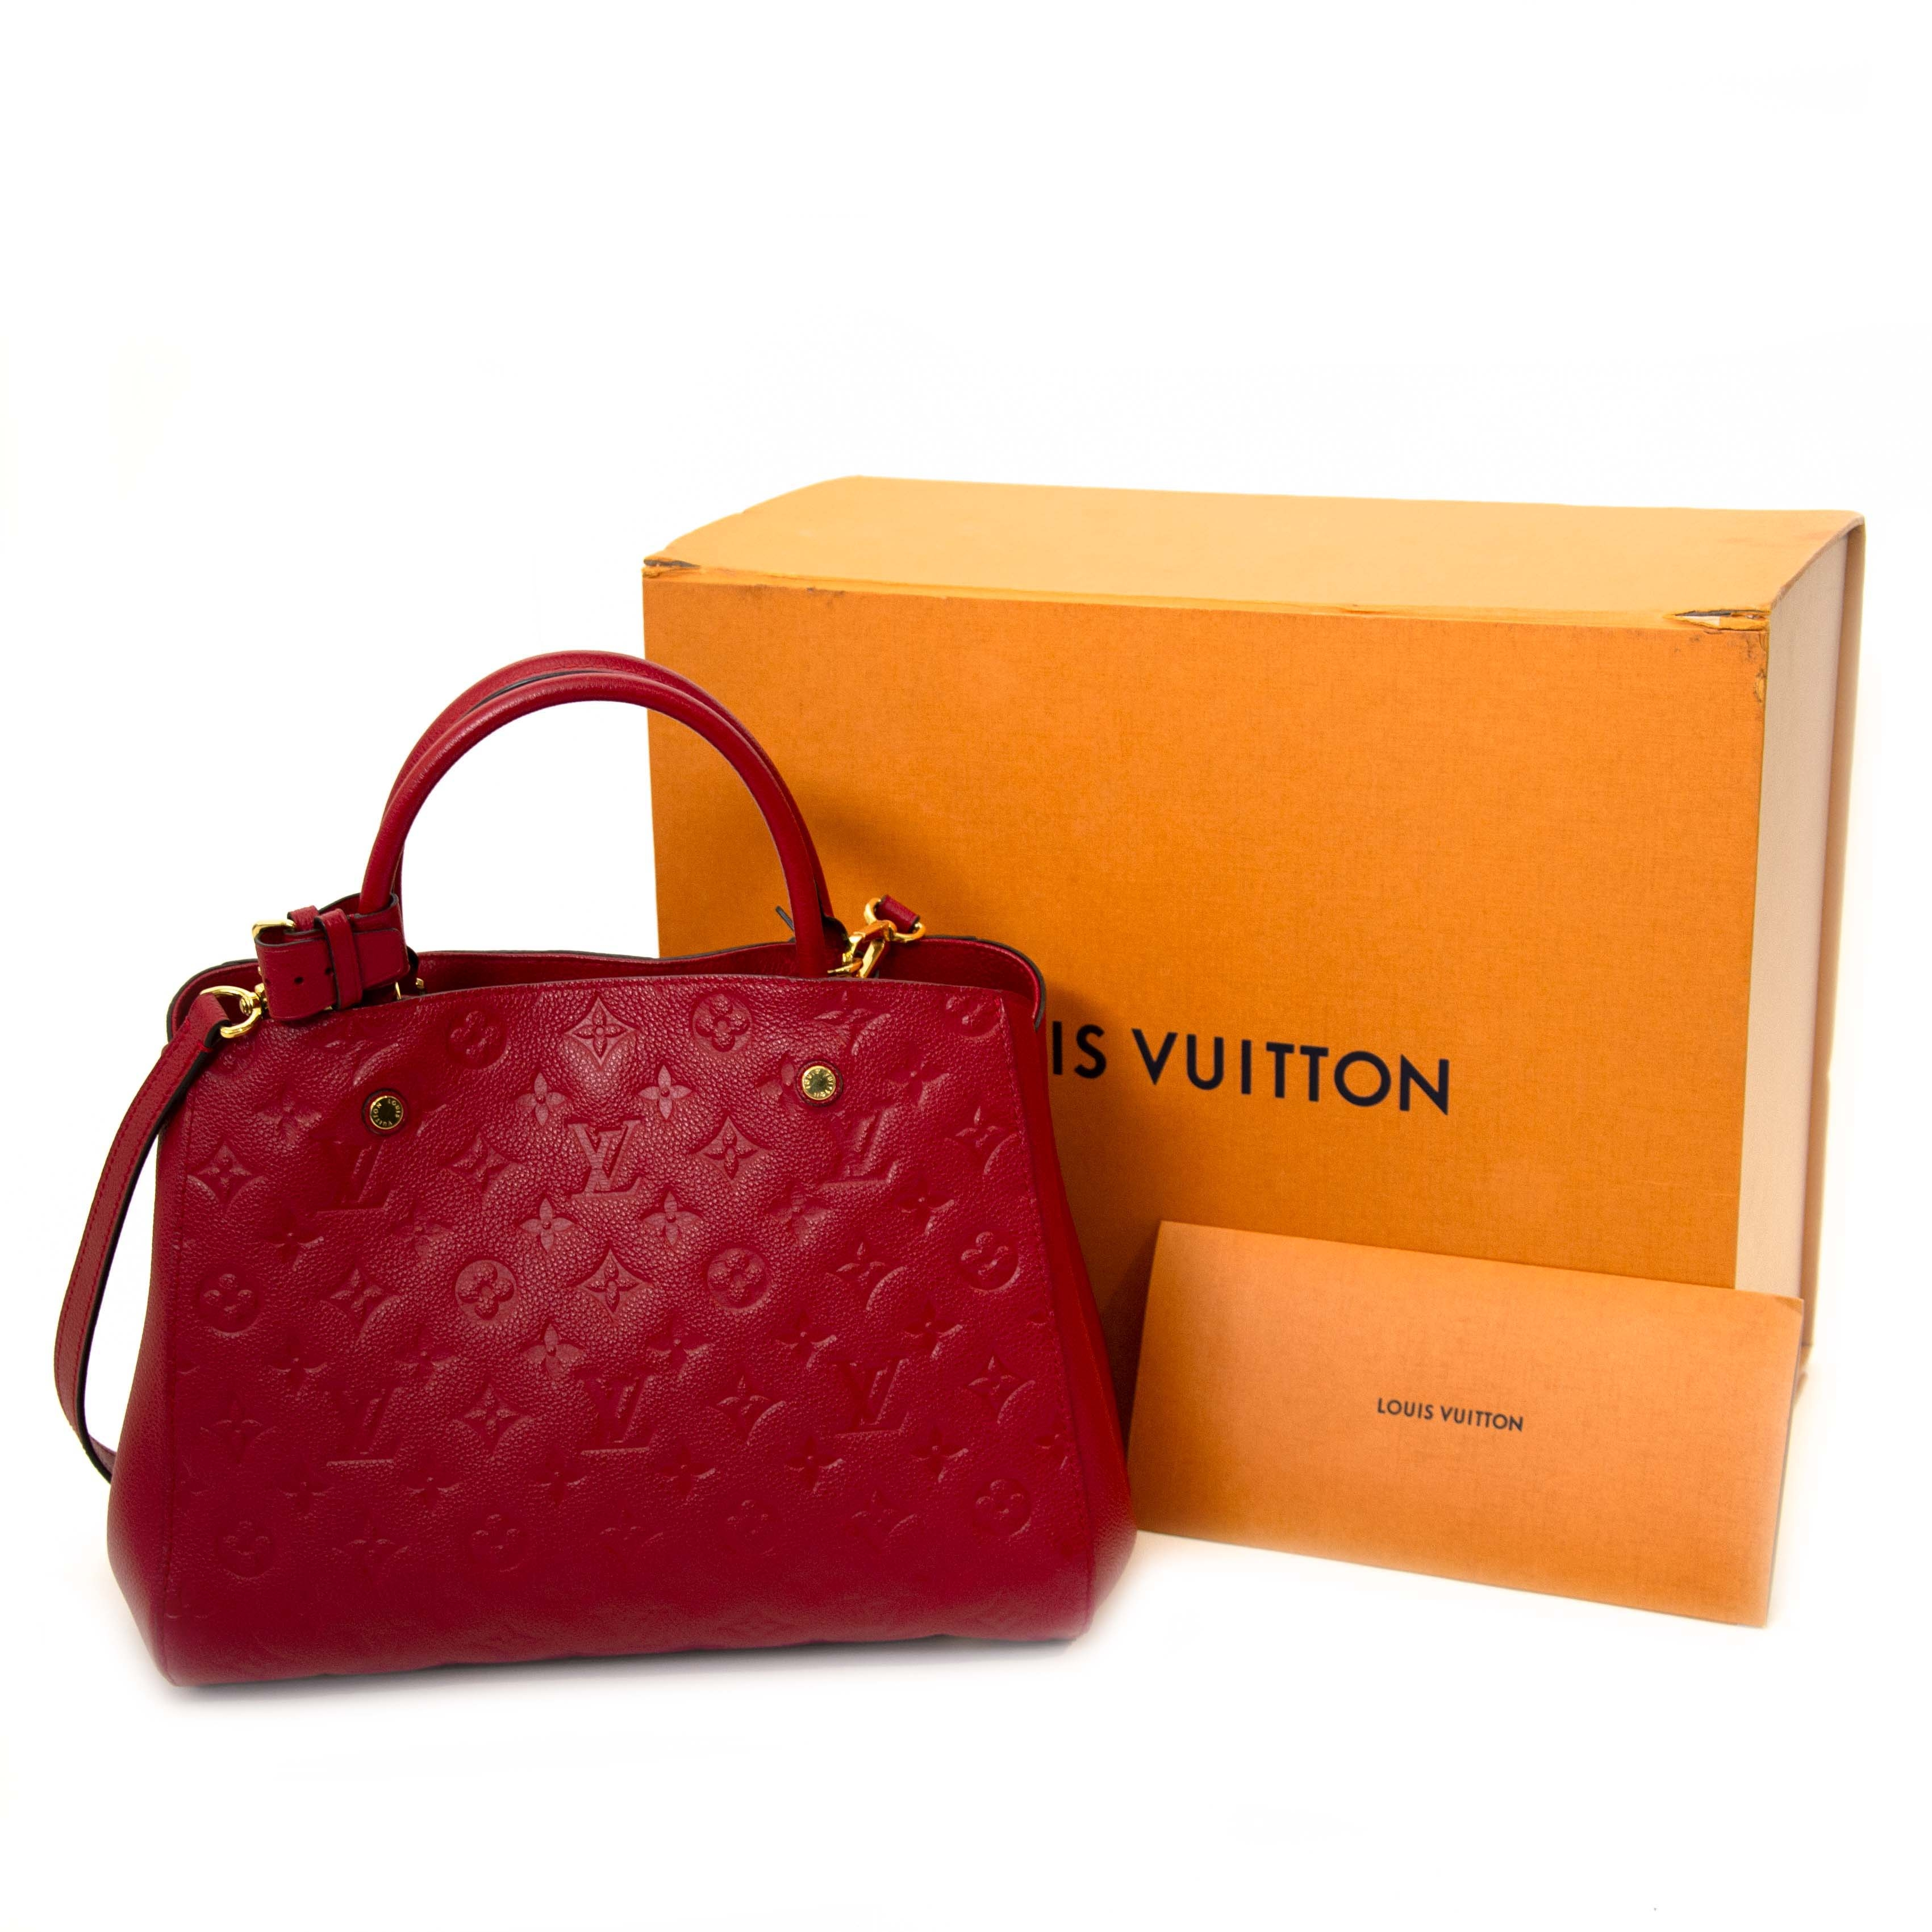 9be8cb37c60f Labellov Buy authentic vintage Louis Vuitton online with Labellov ...